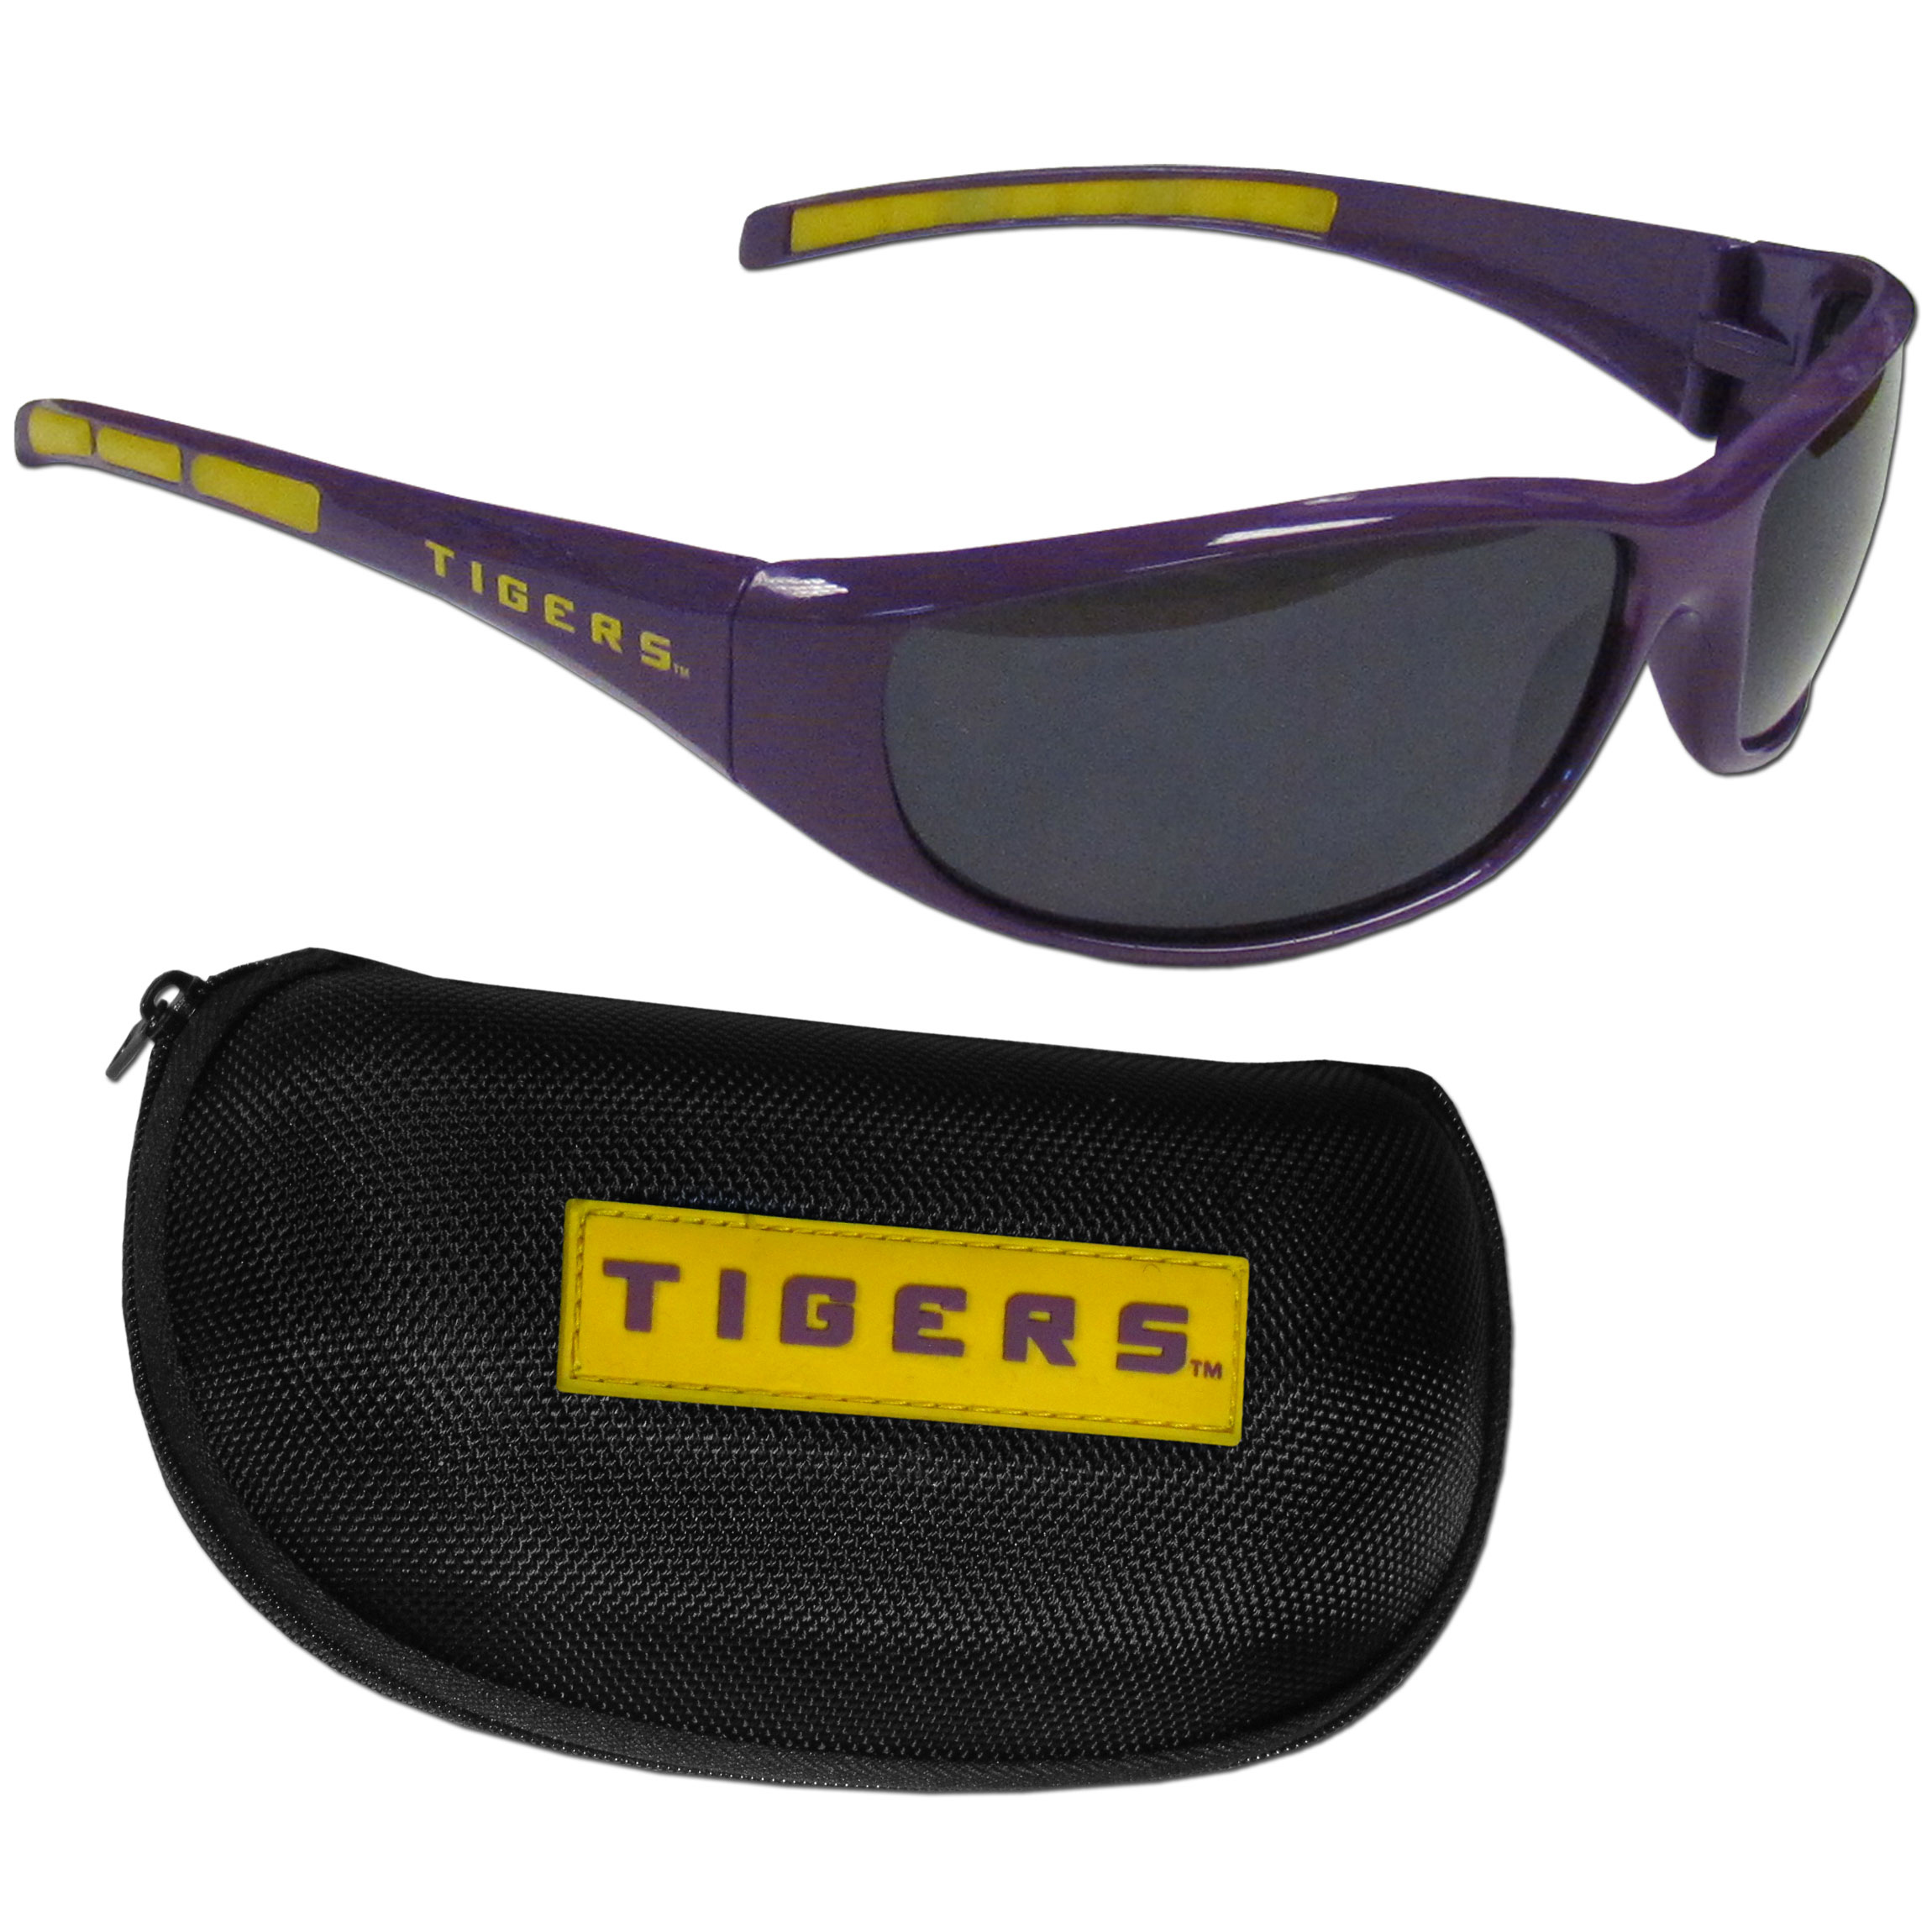 LSU Tigers Wrap Sunglass and Case Set - This great set includes a high quality pair of LSU Tigers wrap sunglasses and hard carrying case.